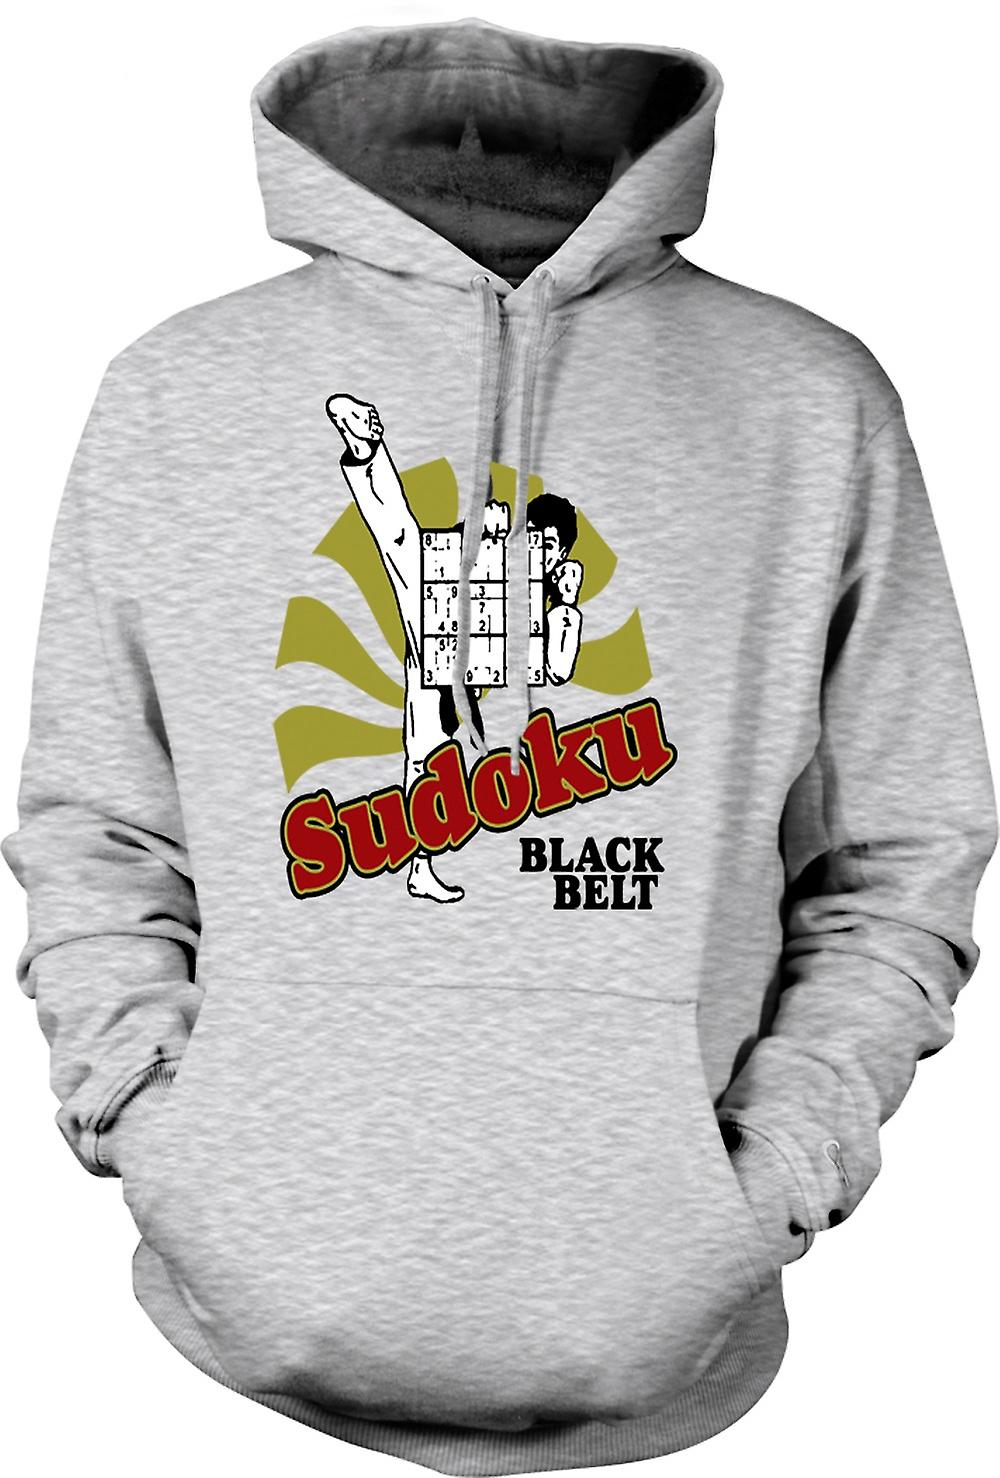 Mens Hoodie - Sudoku Black Belt Karate - Funny